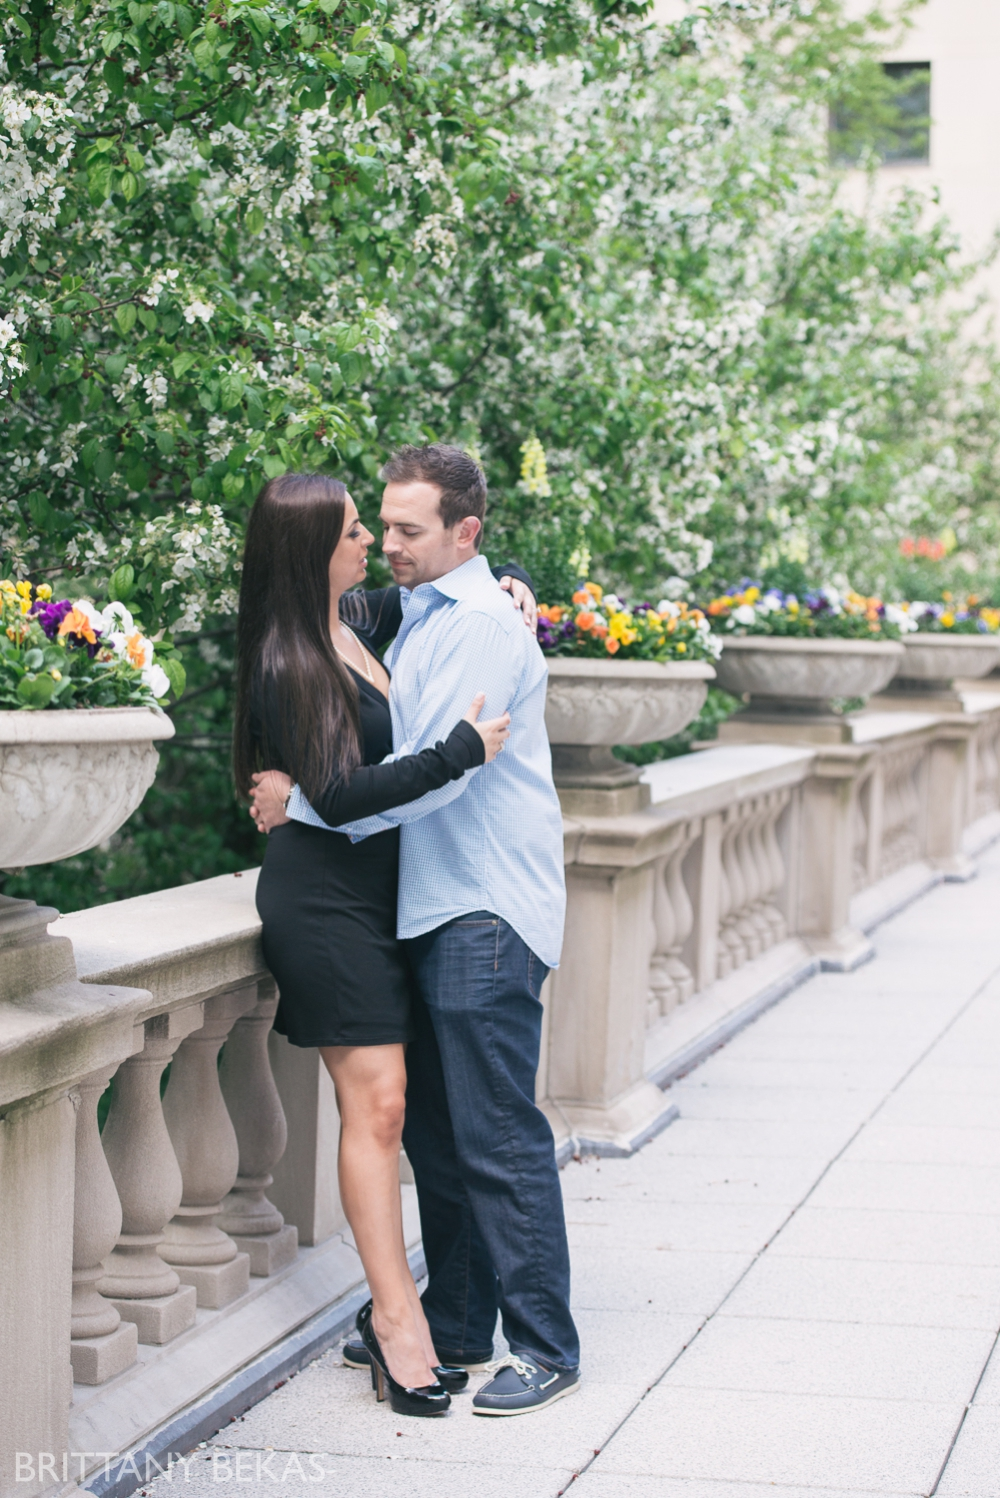 chicago engagement : lurie gardens, art insititute gardens // brittany bekas photography - www.brittanybekas.com // wedding + lifestyle photographer based in chicago, illinois